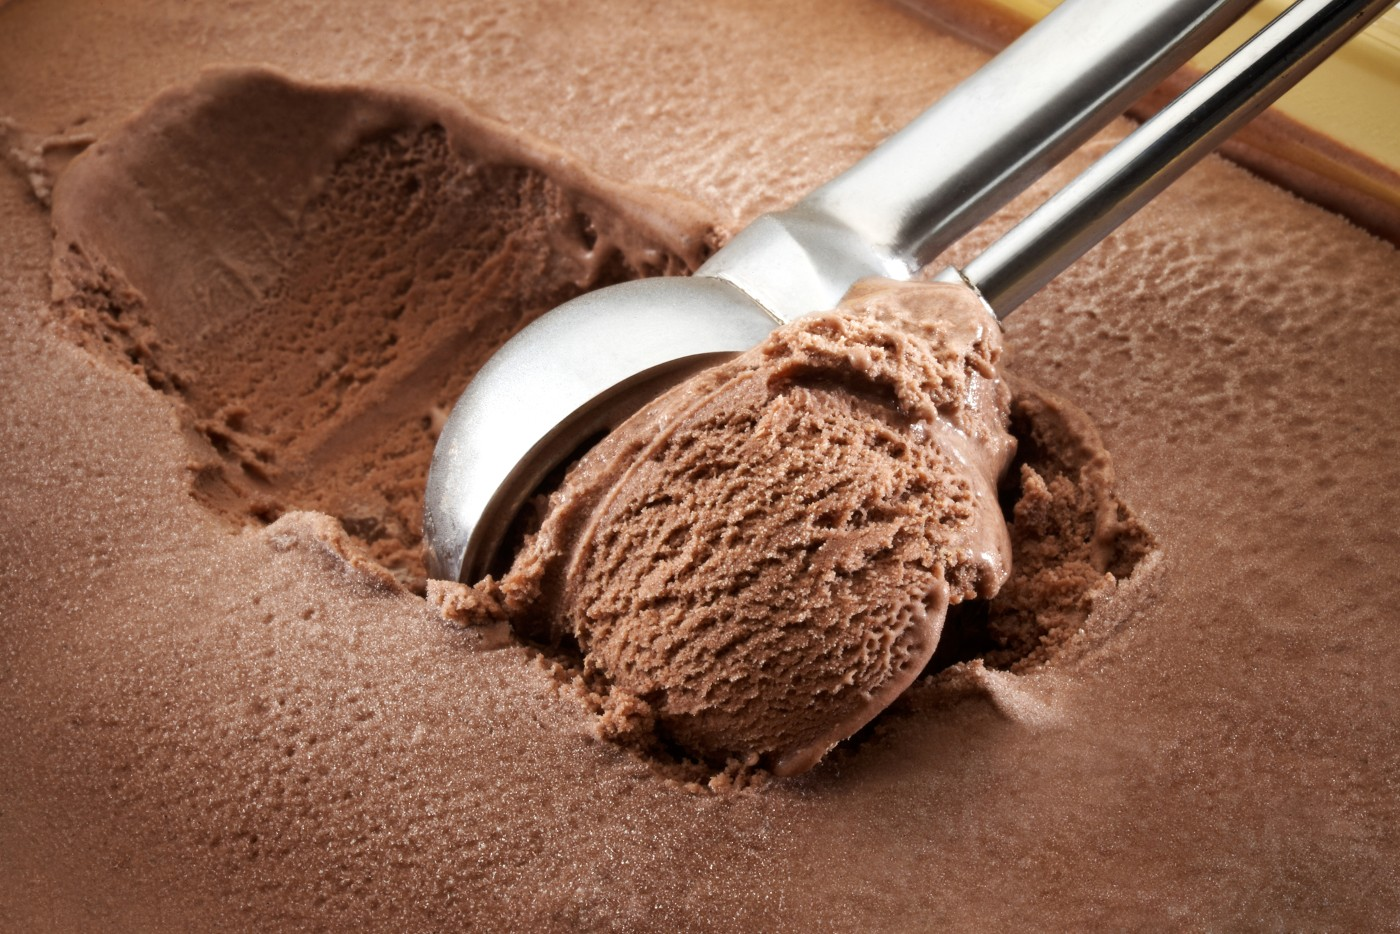 https://tickertapecdn.tdameritrade.com/assets/images/pages/md/Scooping chocolate ice cream: Diversify sources